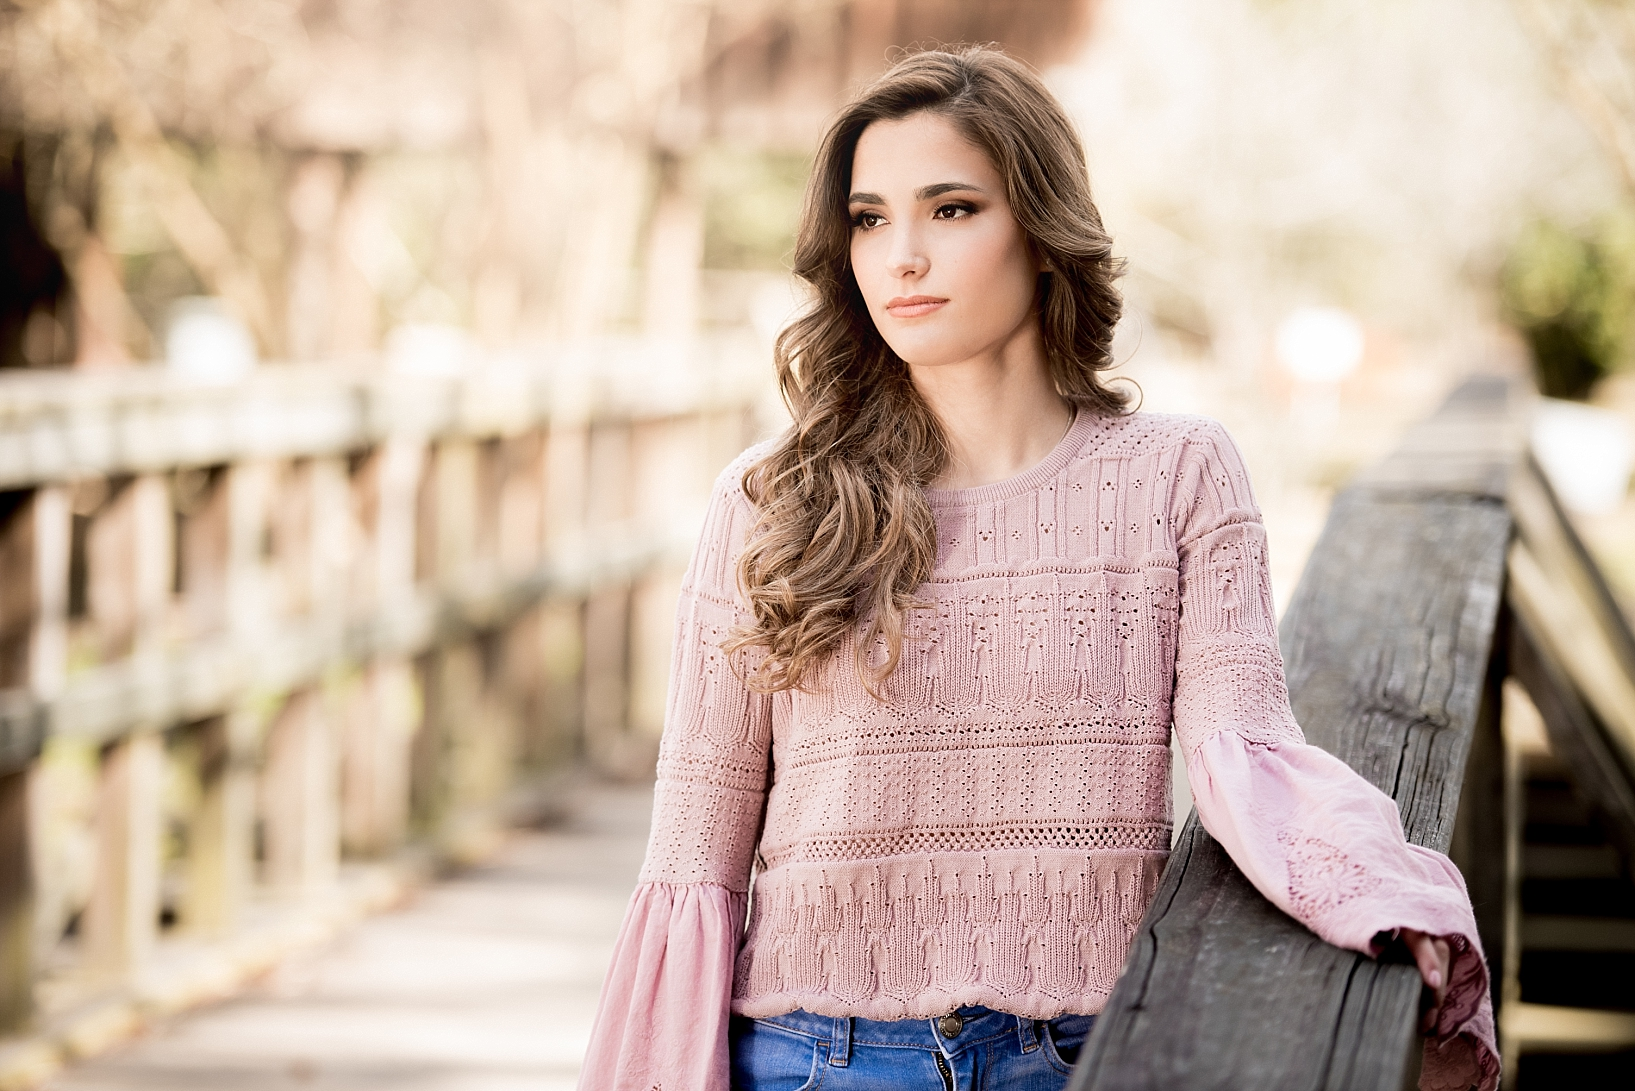 Muted tones lead to a stunning senior session